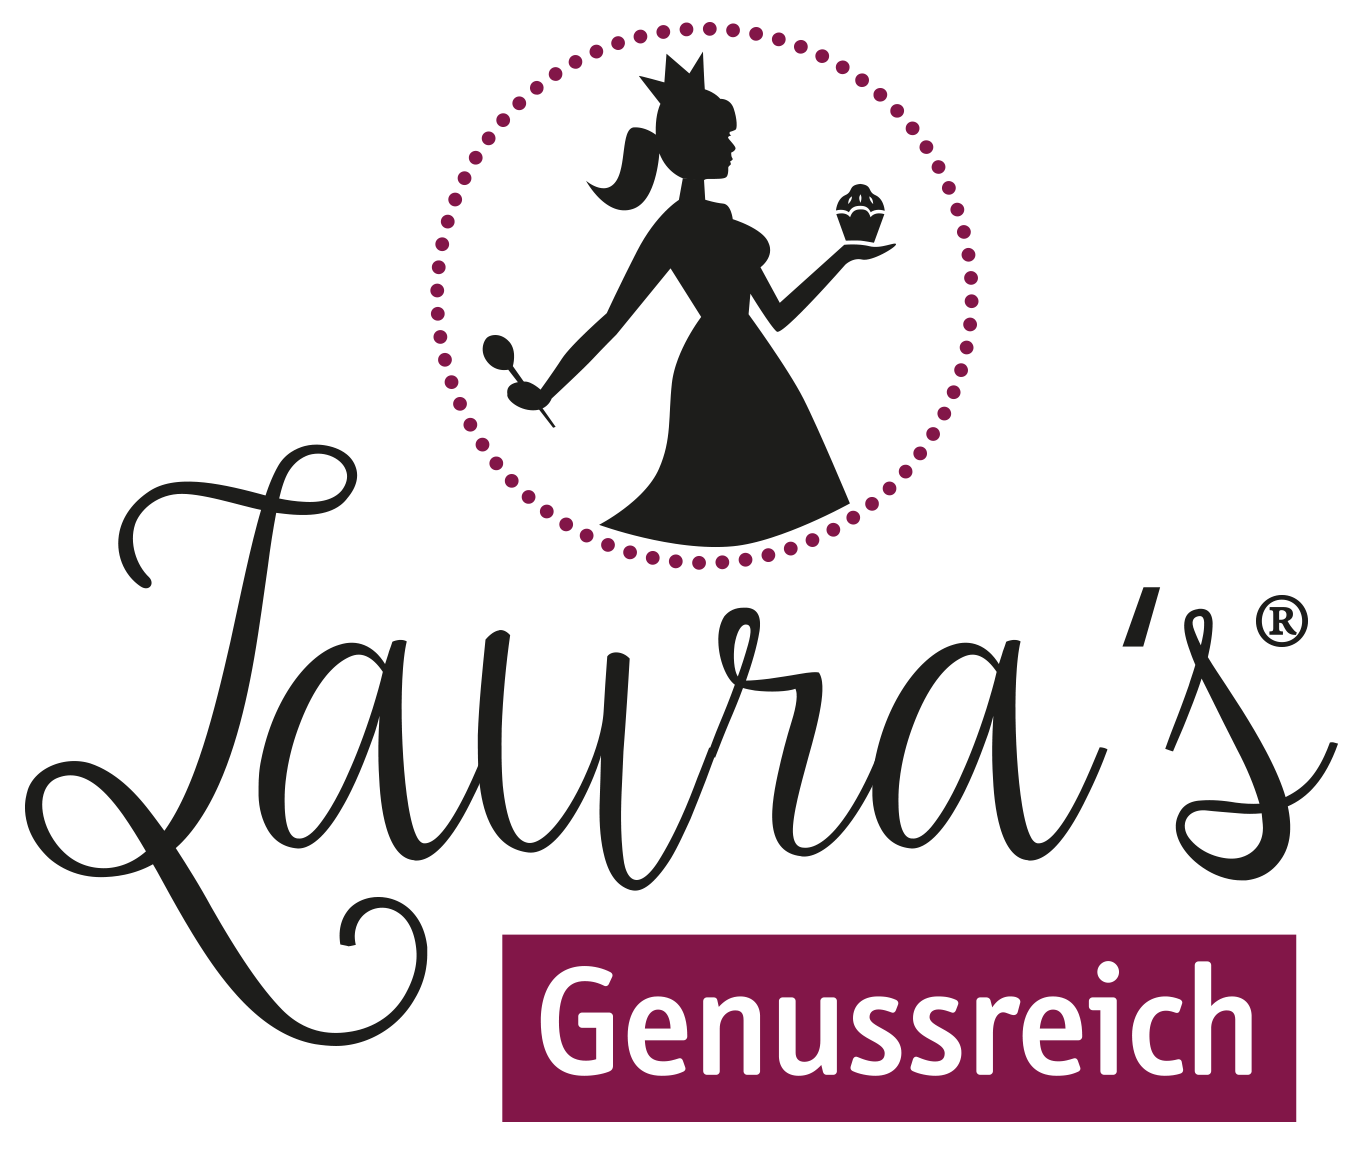 Laura's GenussReich